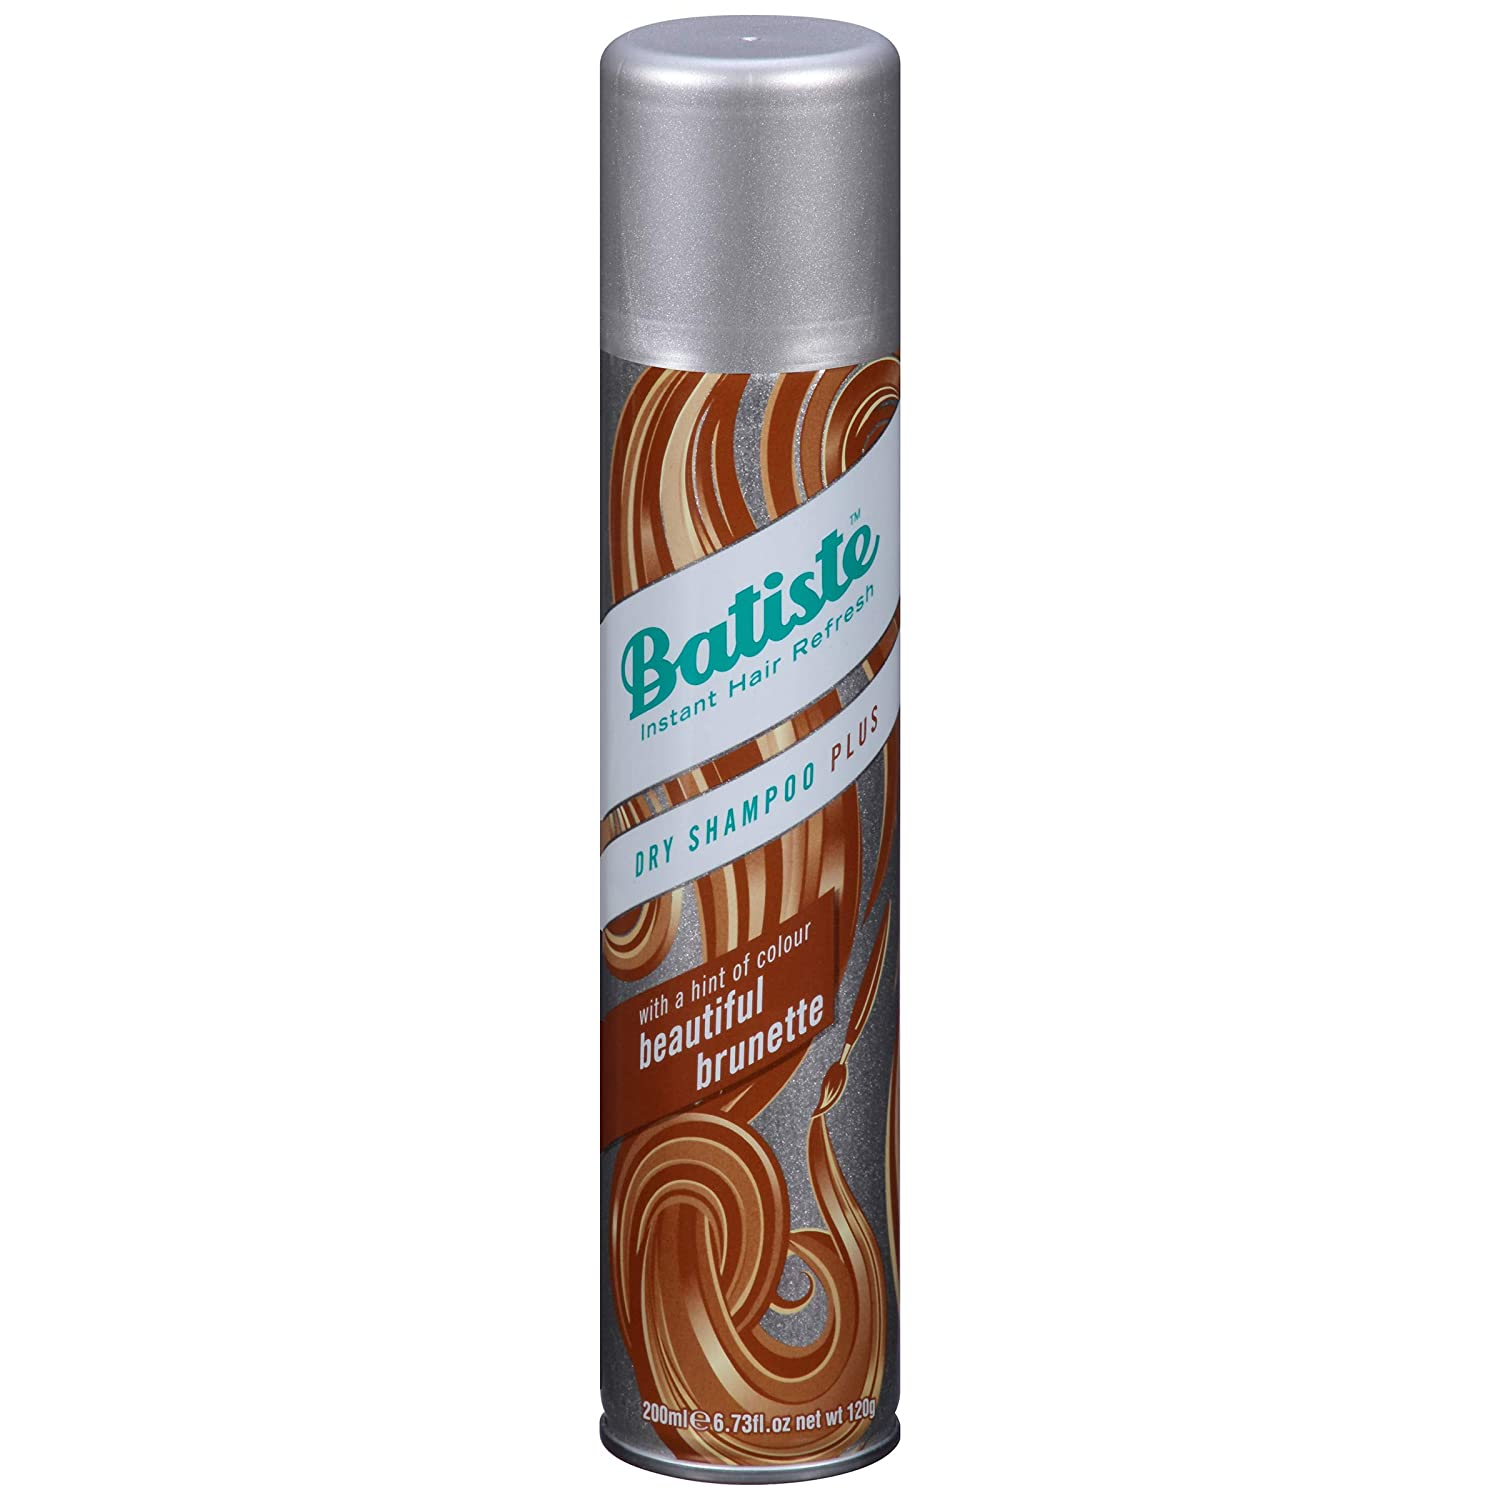 Batiste Beautiful Brunette Dry Shampoo, For Brown & Auburn Hair, 200-ml Church & Dwight 3624673